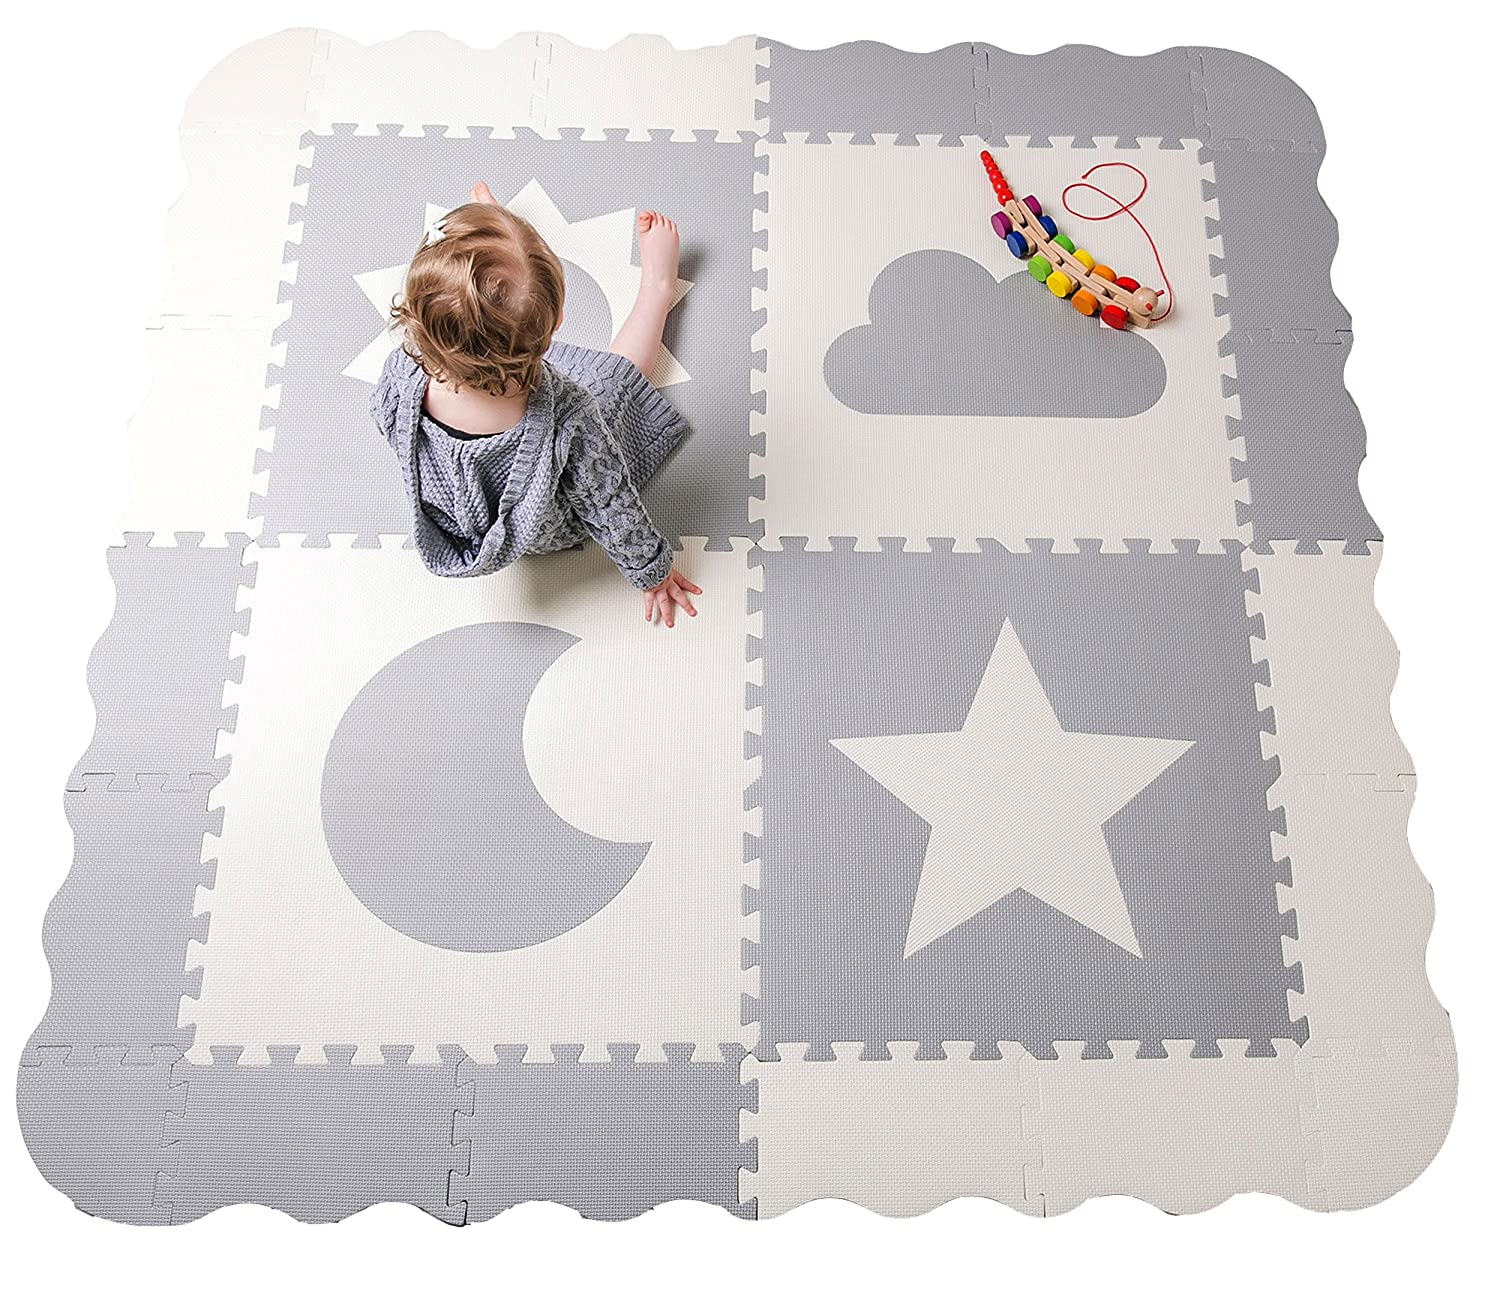 Baby Play Mat Tiles - 61 x 61 Extra Large, Non Toxic Thick Floor Mat for Kids, Grey & White Interlocking Foam Playroom & Nursery Playmat, Safe & Protective For Infants Tummy Time Childlike Behavior MSGW